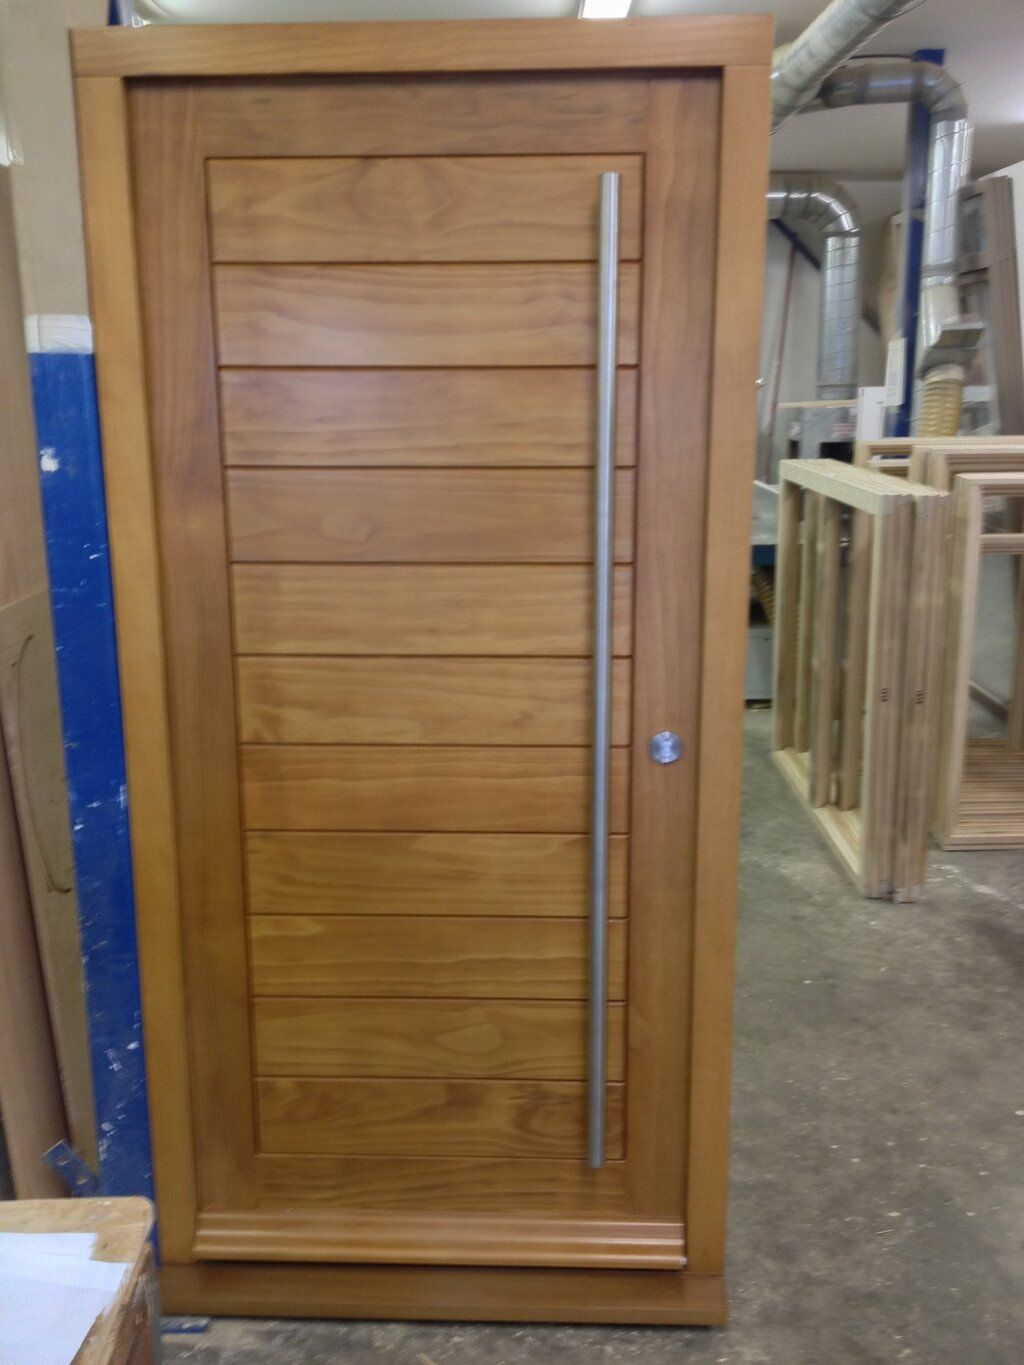 Bespoke Accoya door made by Westgate Joinery & Bespoke Accoya door made by Westgate Joinery | Doors - Unique ...